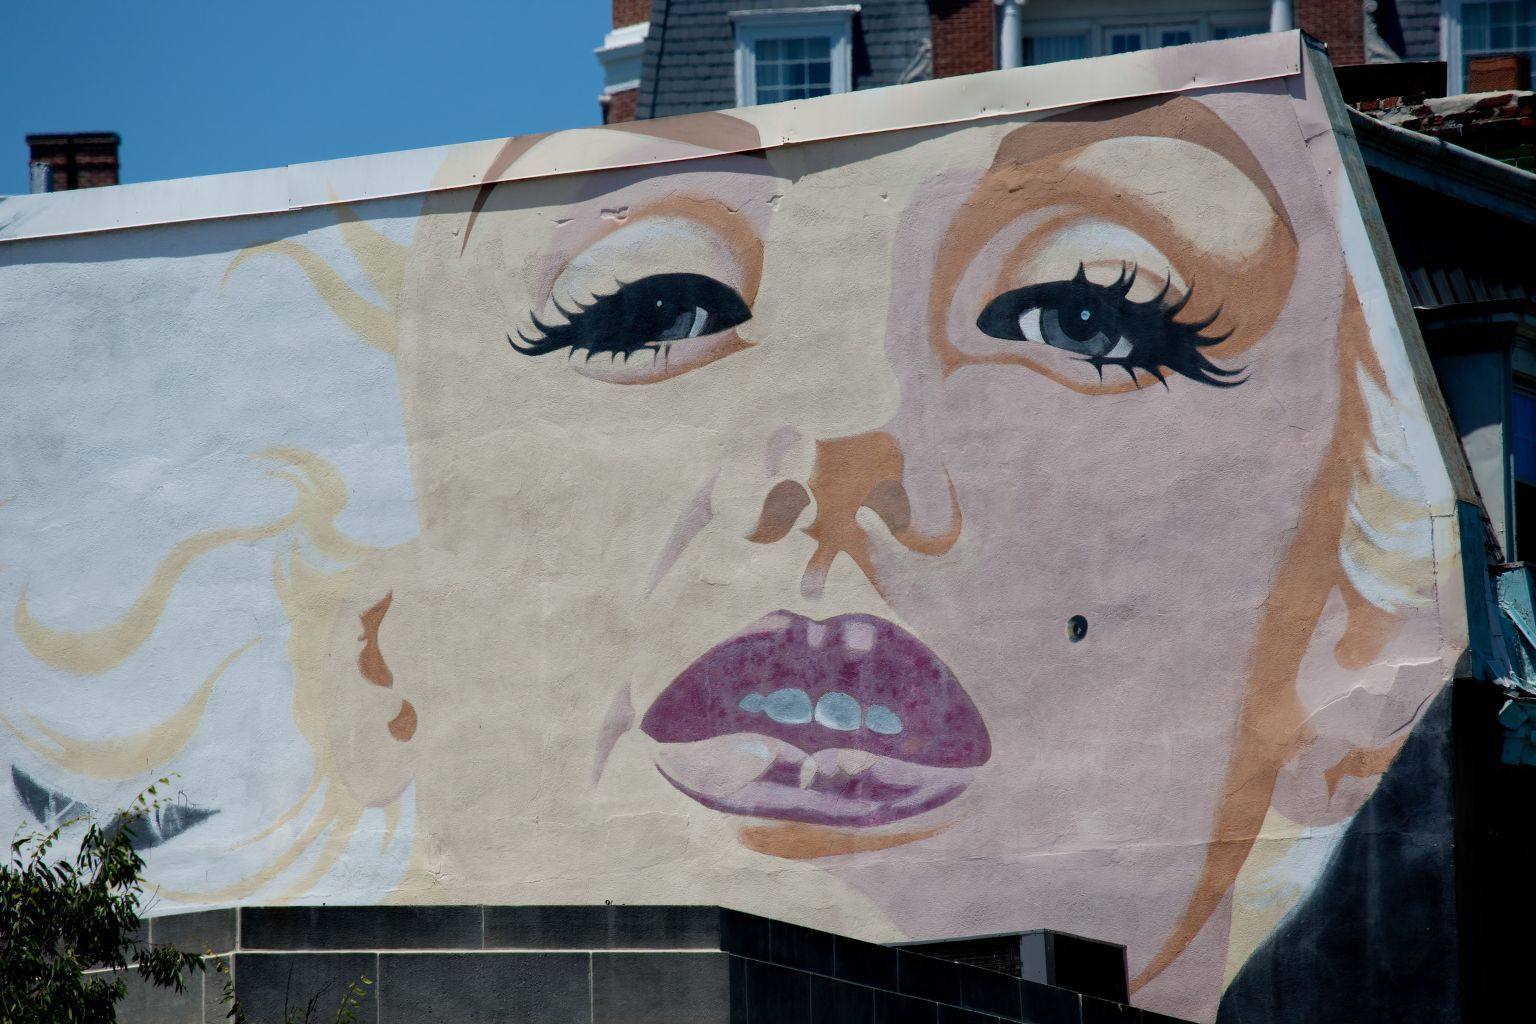 The Marilyn Monroe mural, on the corner of Calvert St. and Connecticut Ave. near the Woodley Park Metro station in DC